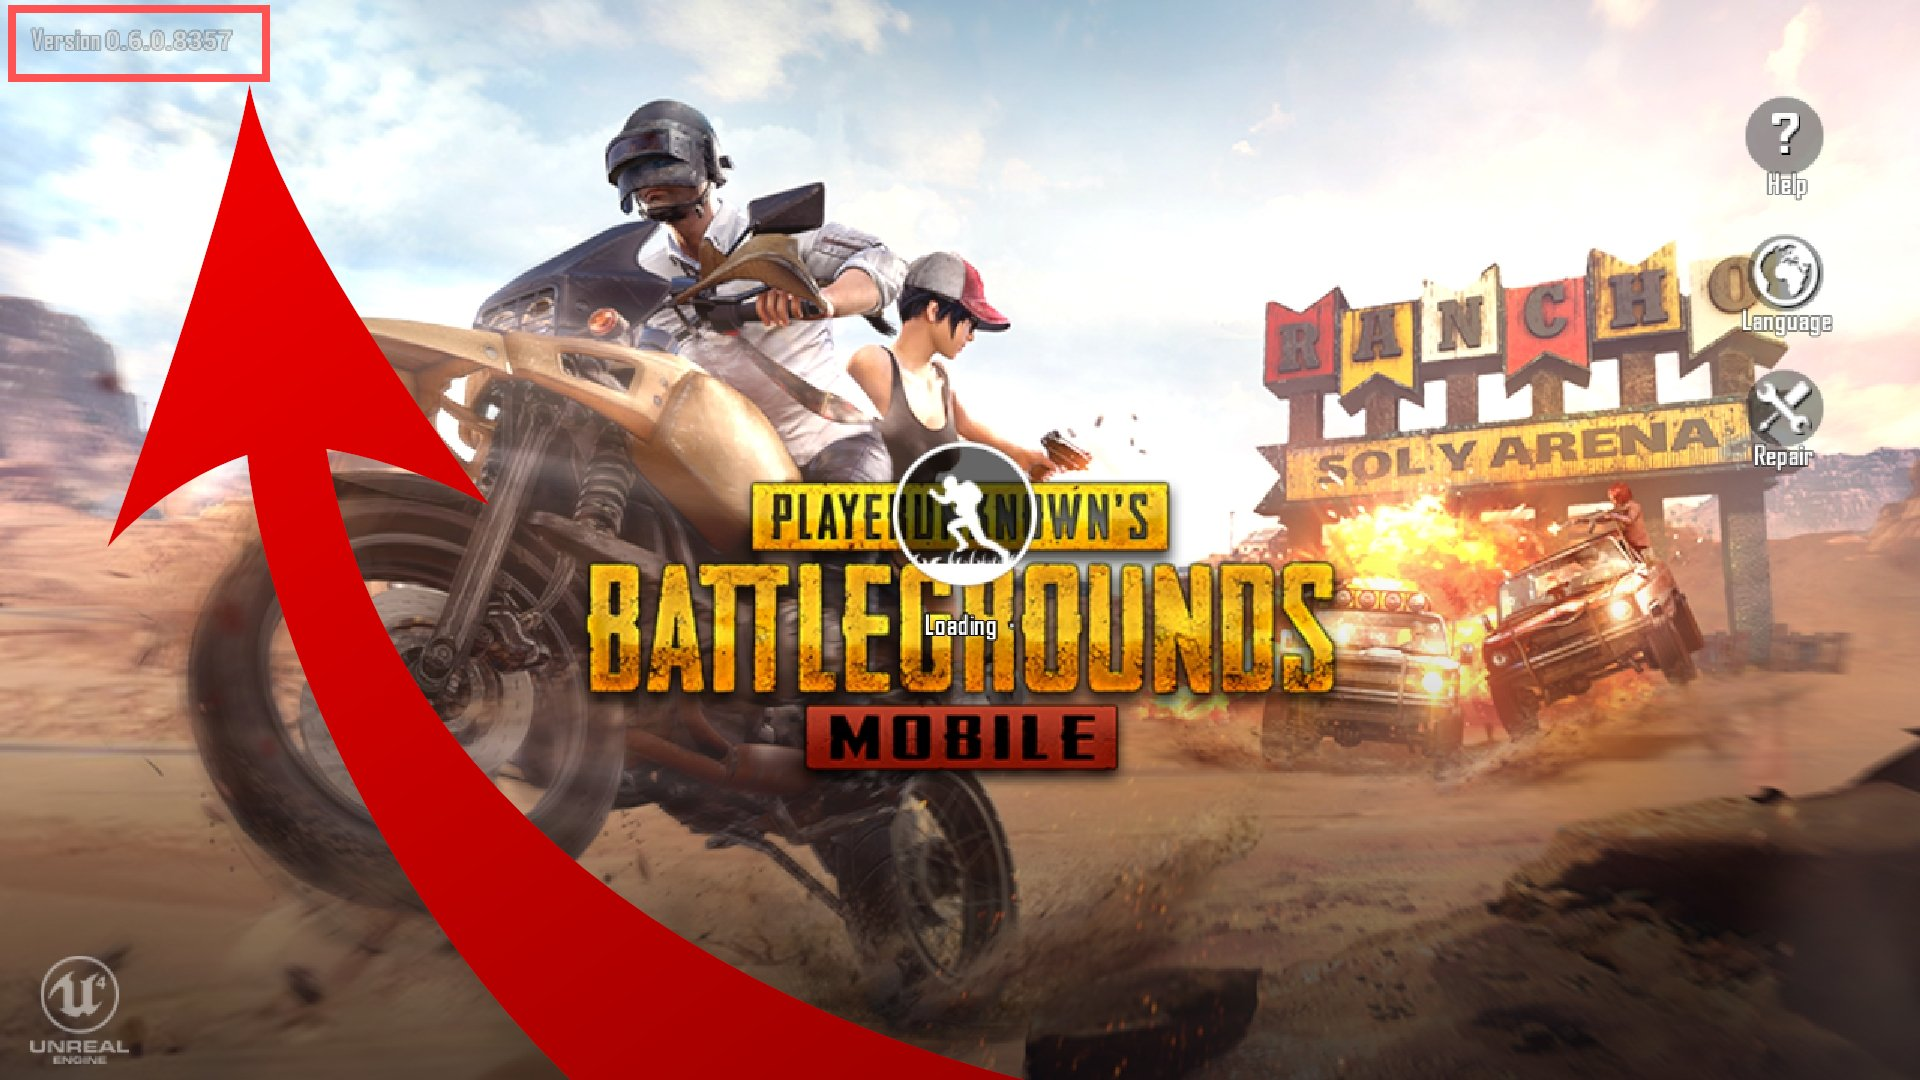 Reduce Lag In Android Pubg Mobile With Gfx Tool: مشكلة تعليق/Lag لعبة PUBG Mobile على الاندرويد